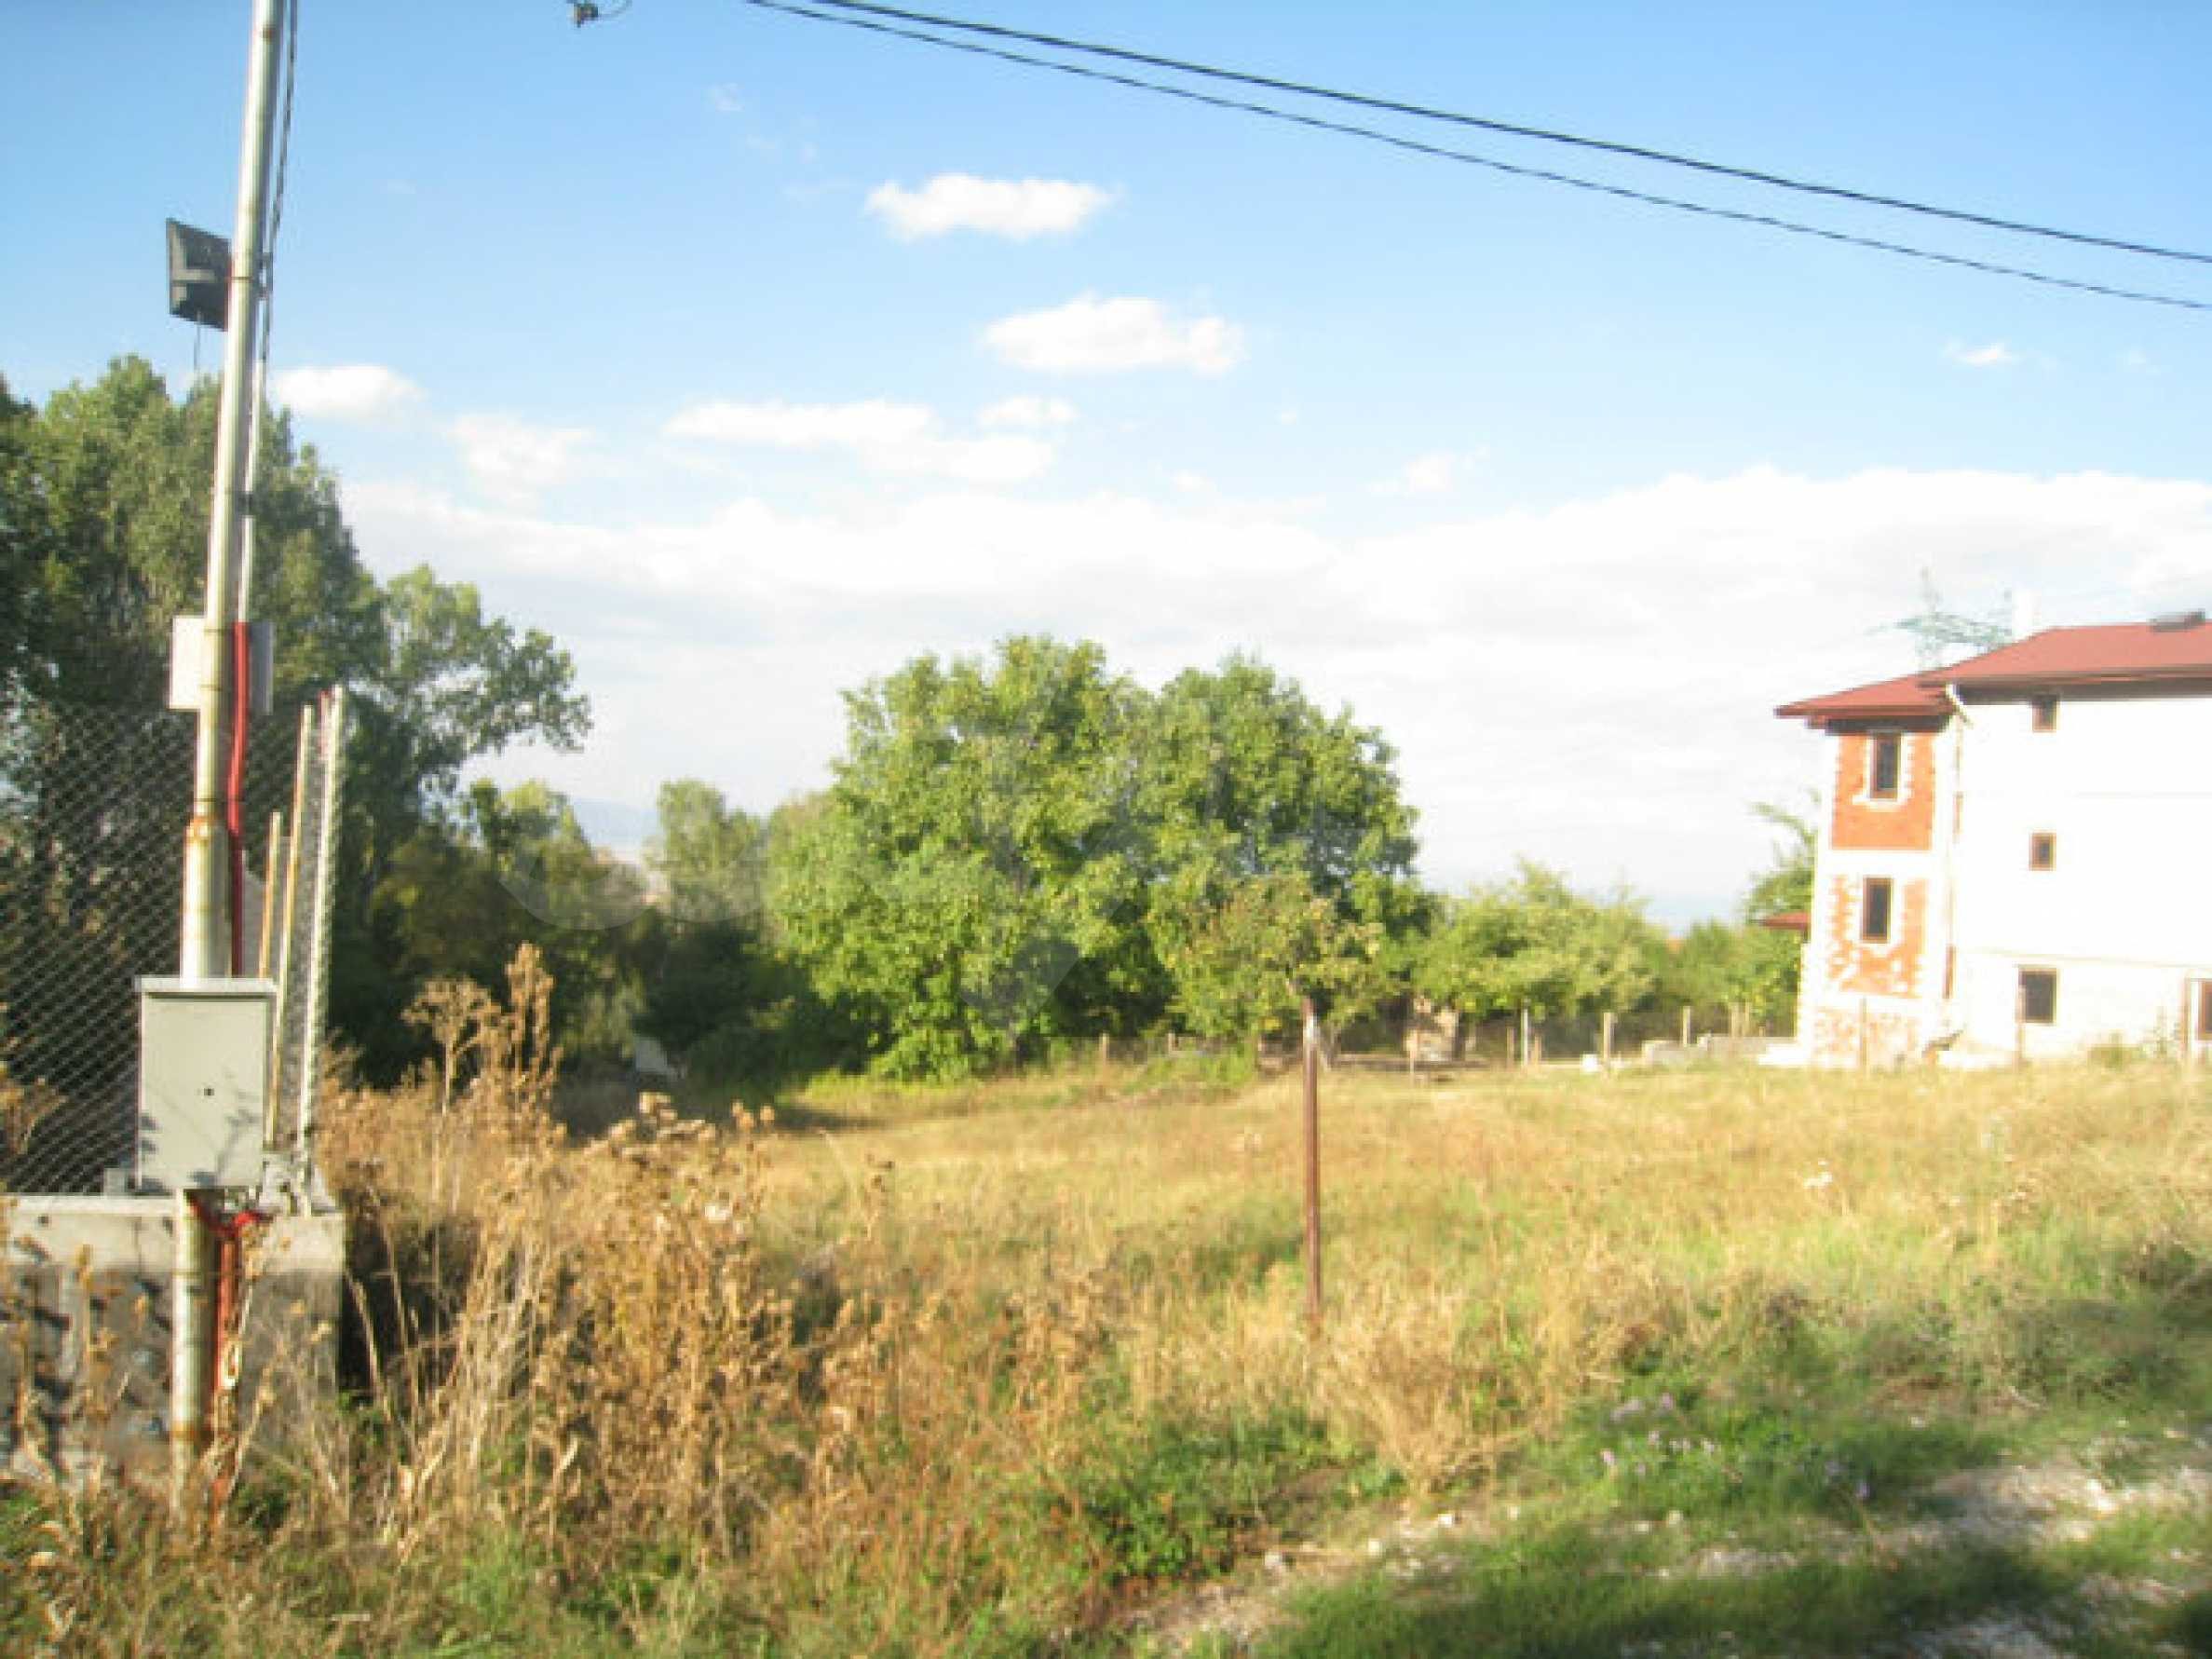 Regulated plot of land for rural private house or villa near Sofia 19